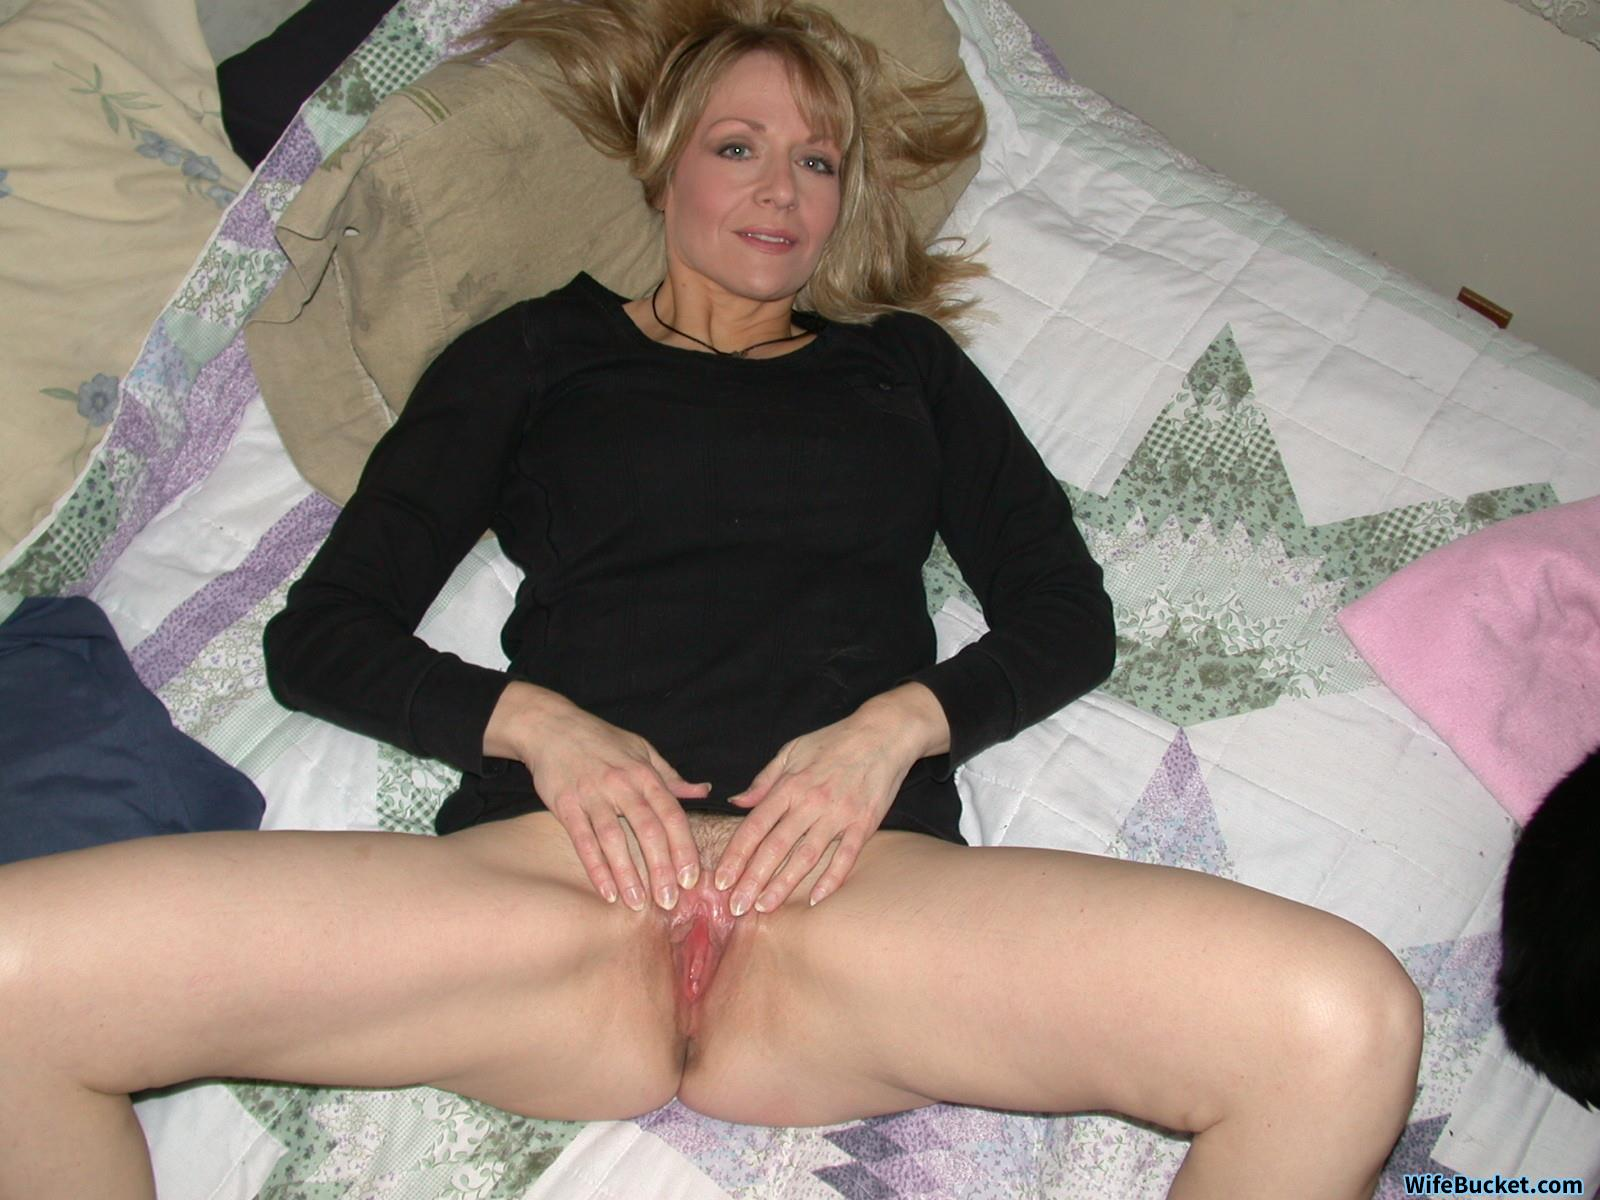 Exact Nude hot amateur milf are not